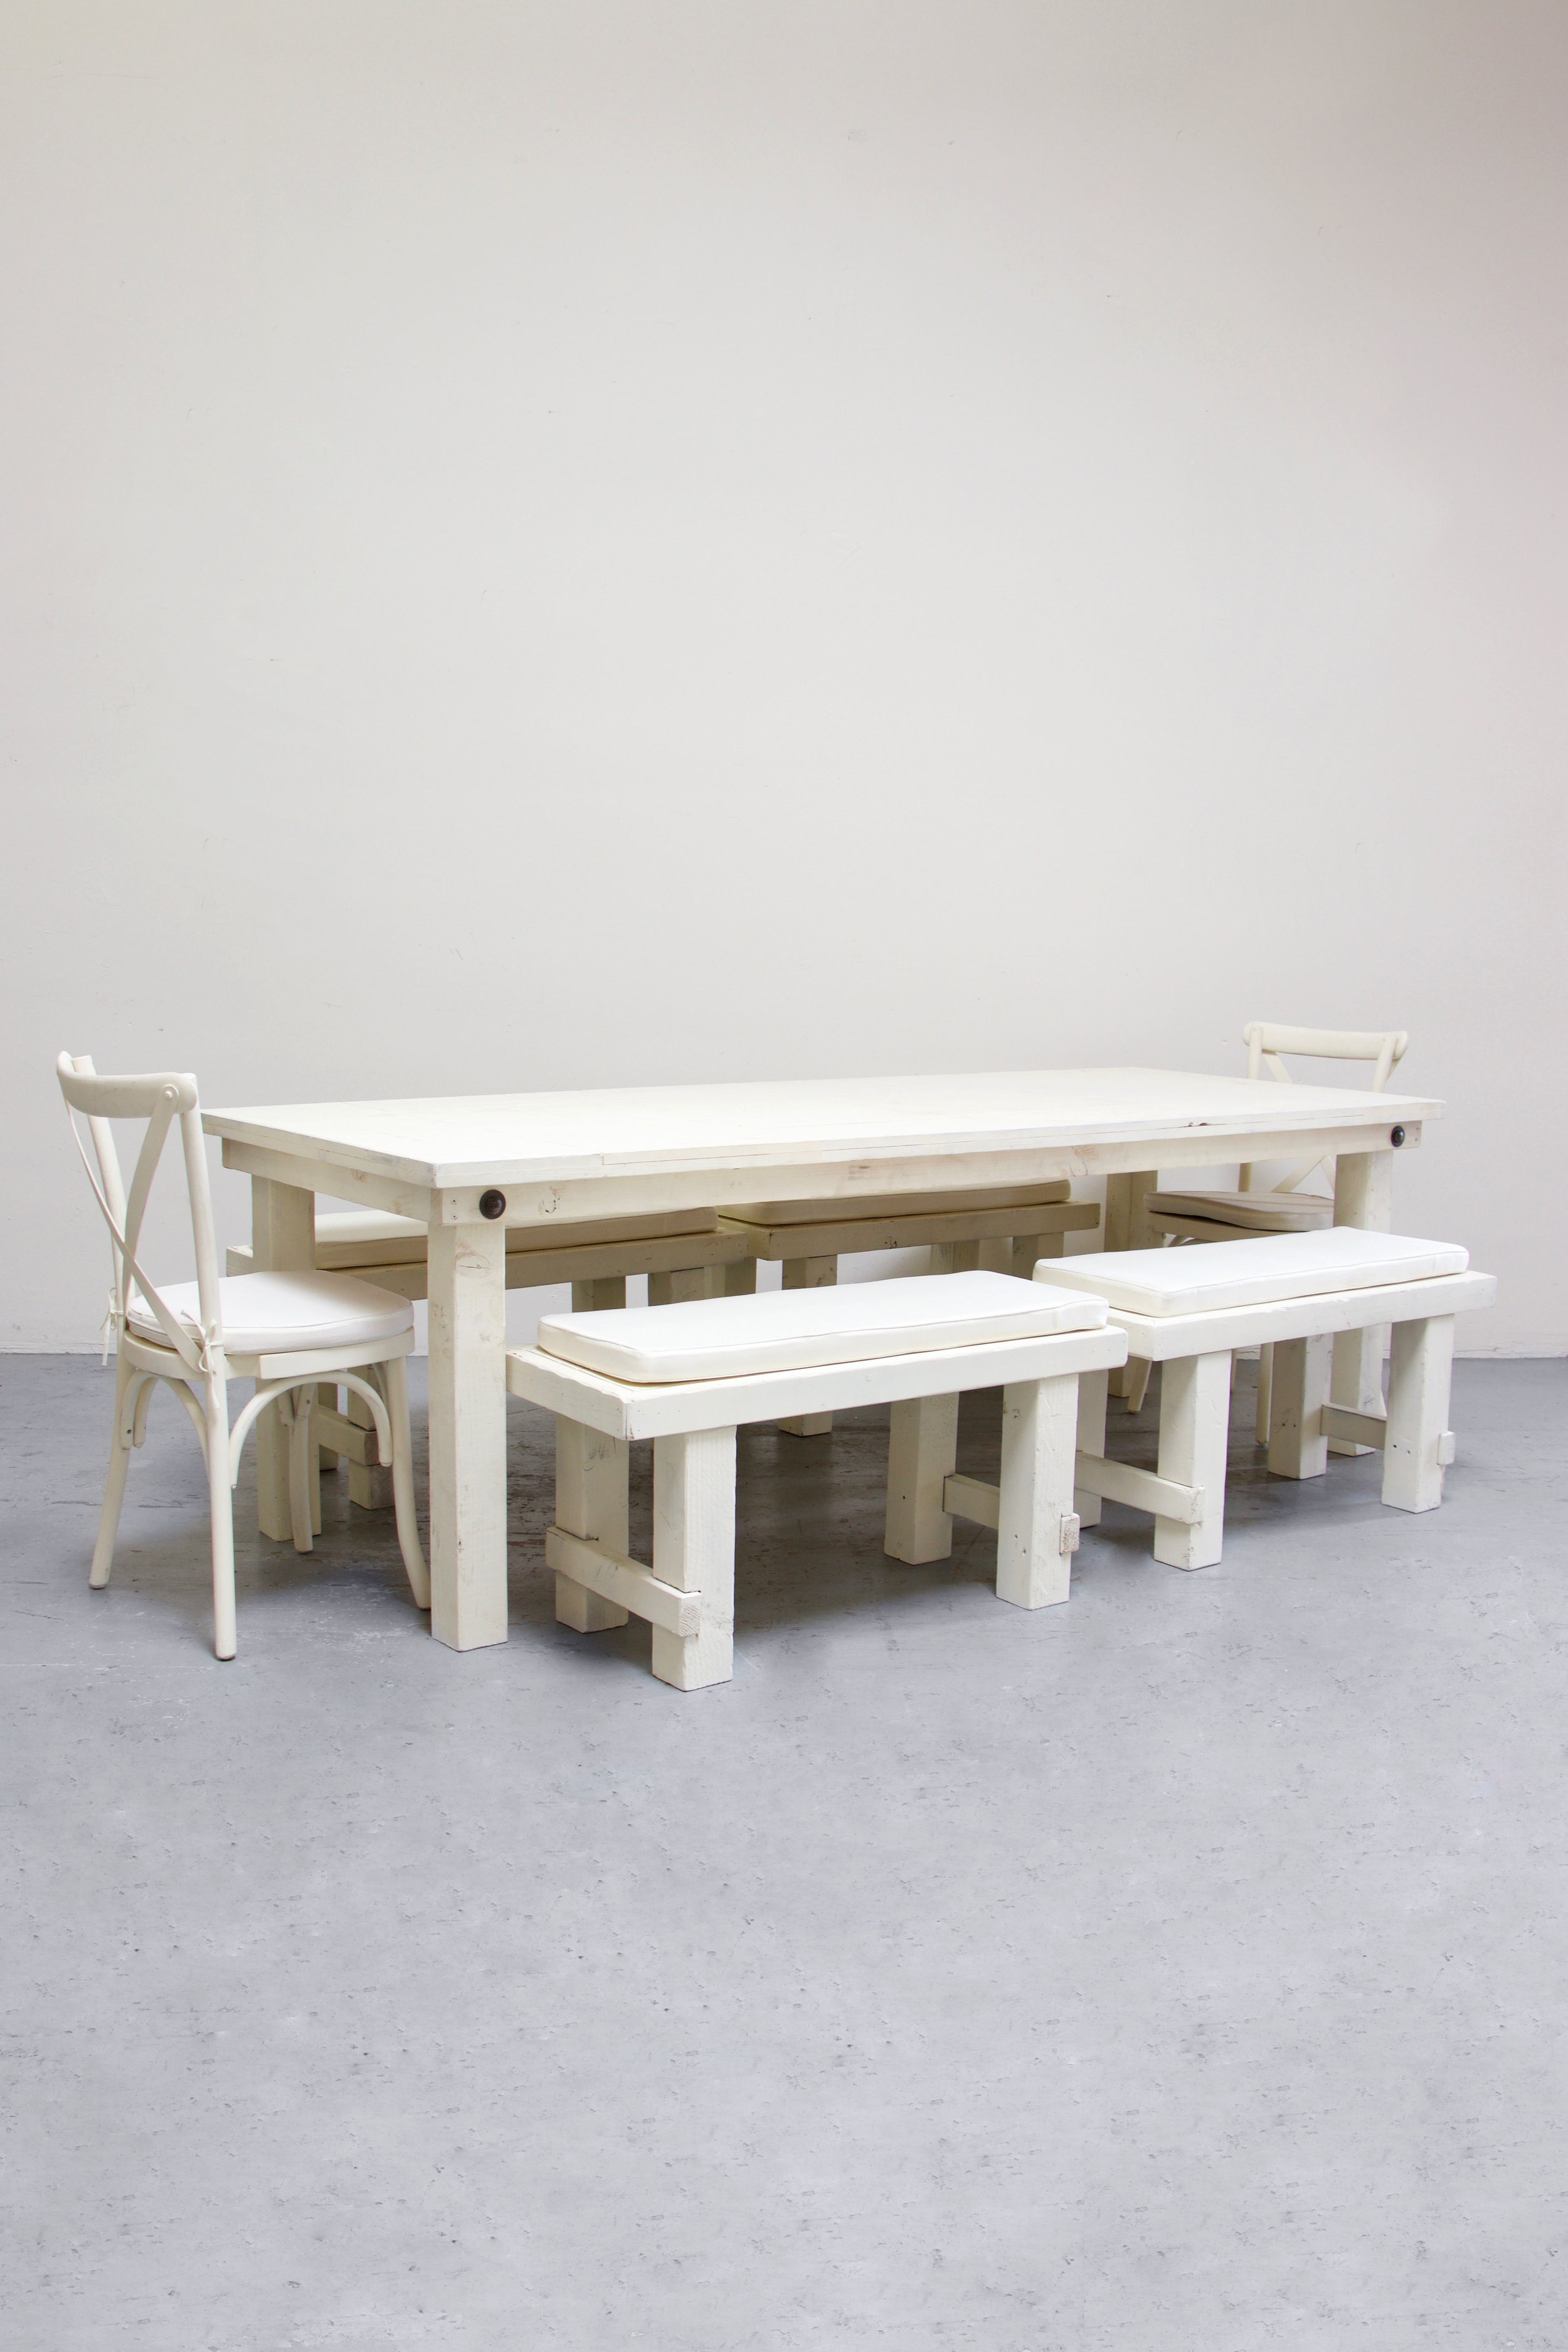 $160 1 Vintage White Farm Table w/ 4 Short Benches & 2 Cross-Back Chairs